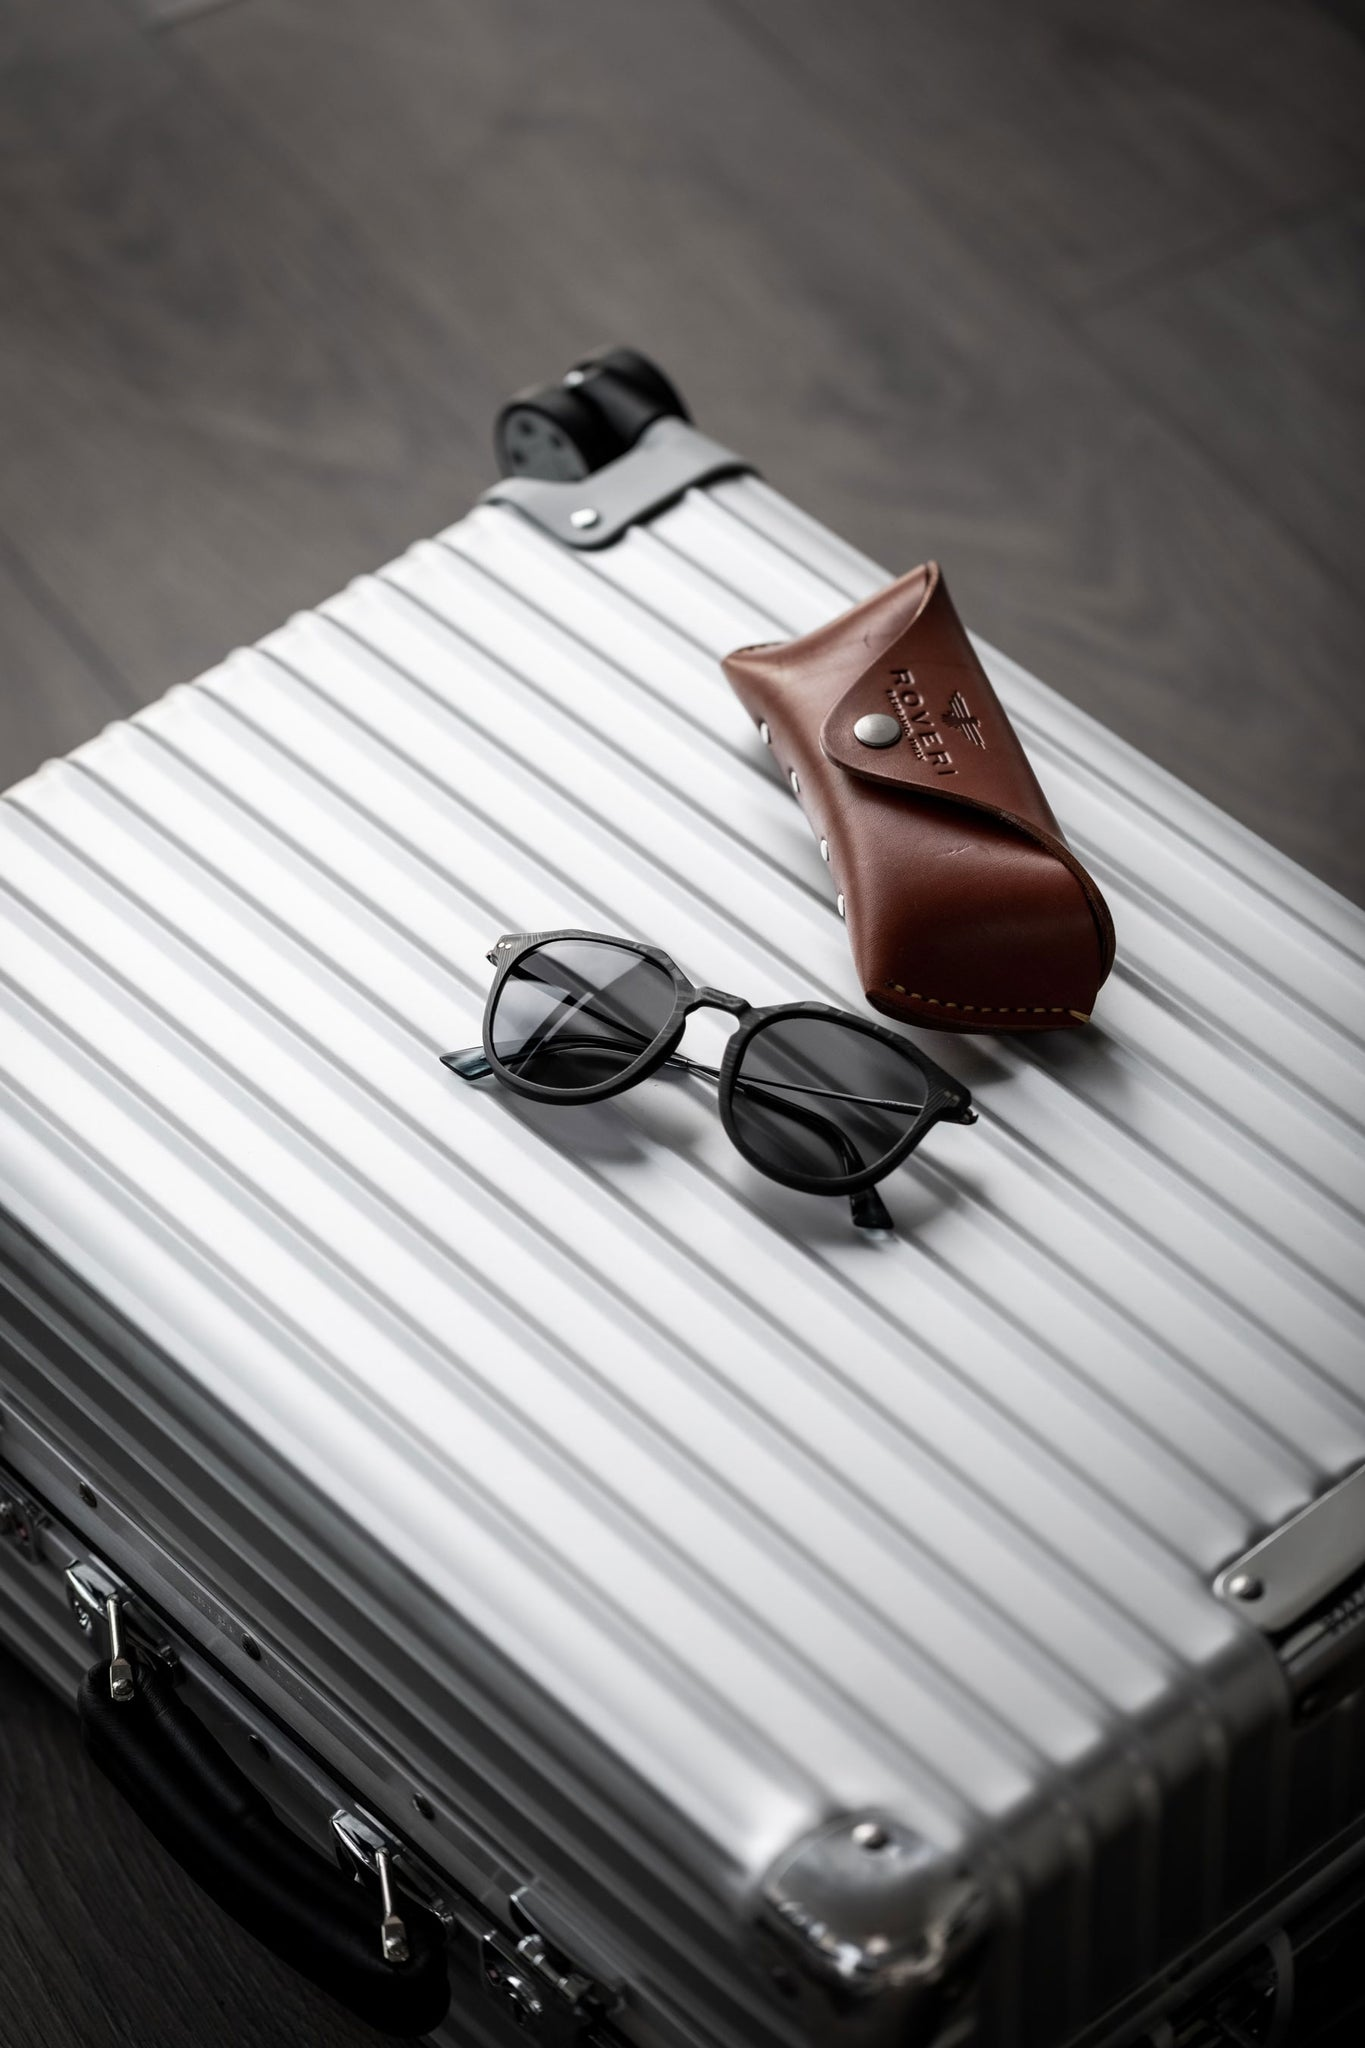 Roveri Eyewear clm7 black on black x Rimowa classic cabin suitcase paired with premium handmade leather case.